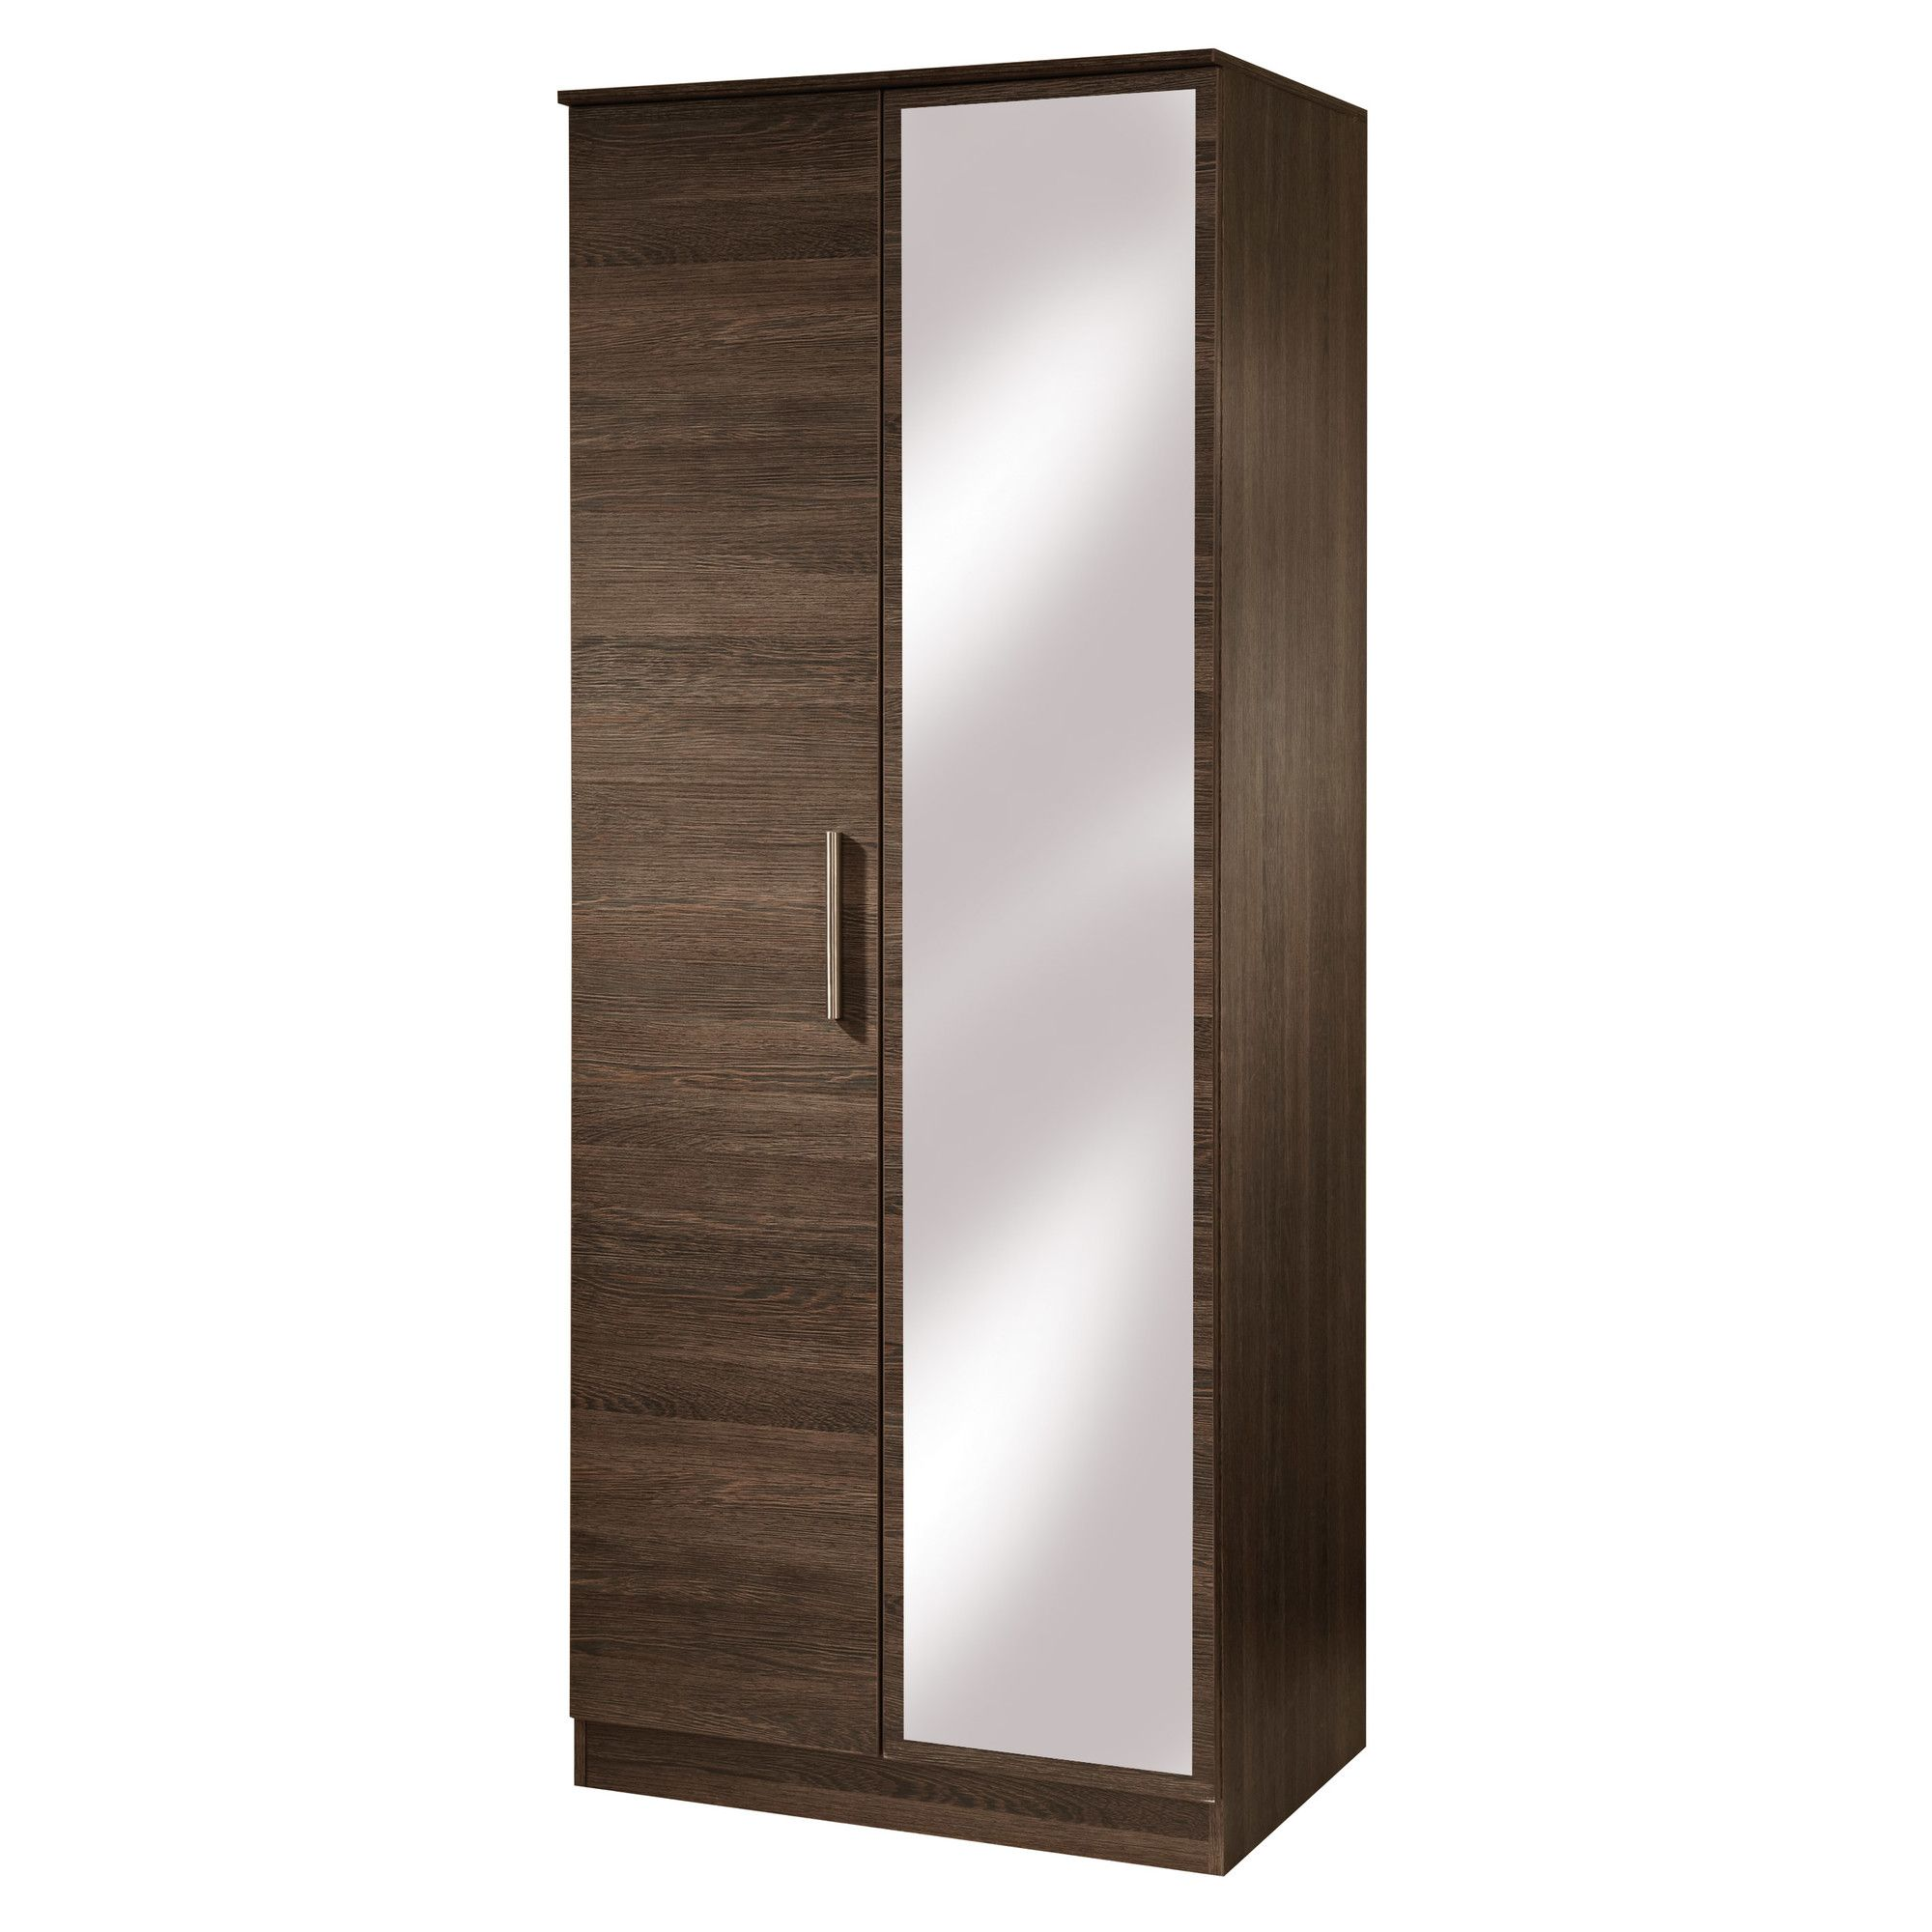 Welcome Furniture Contrast Tall Mirror Wardrobe - Mushroom at Tesco Direct